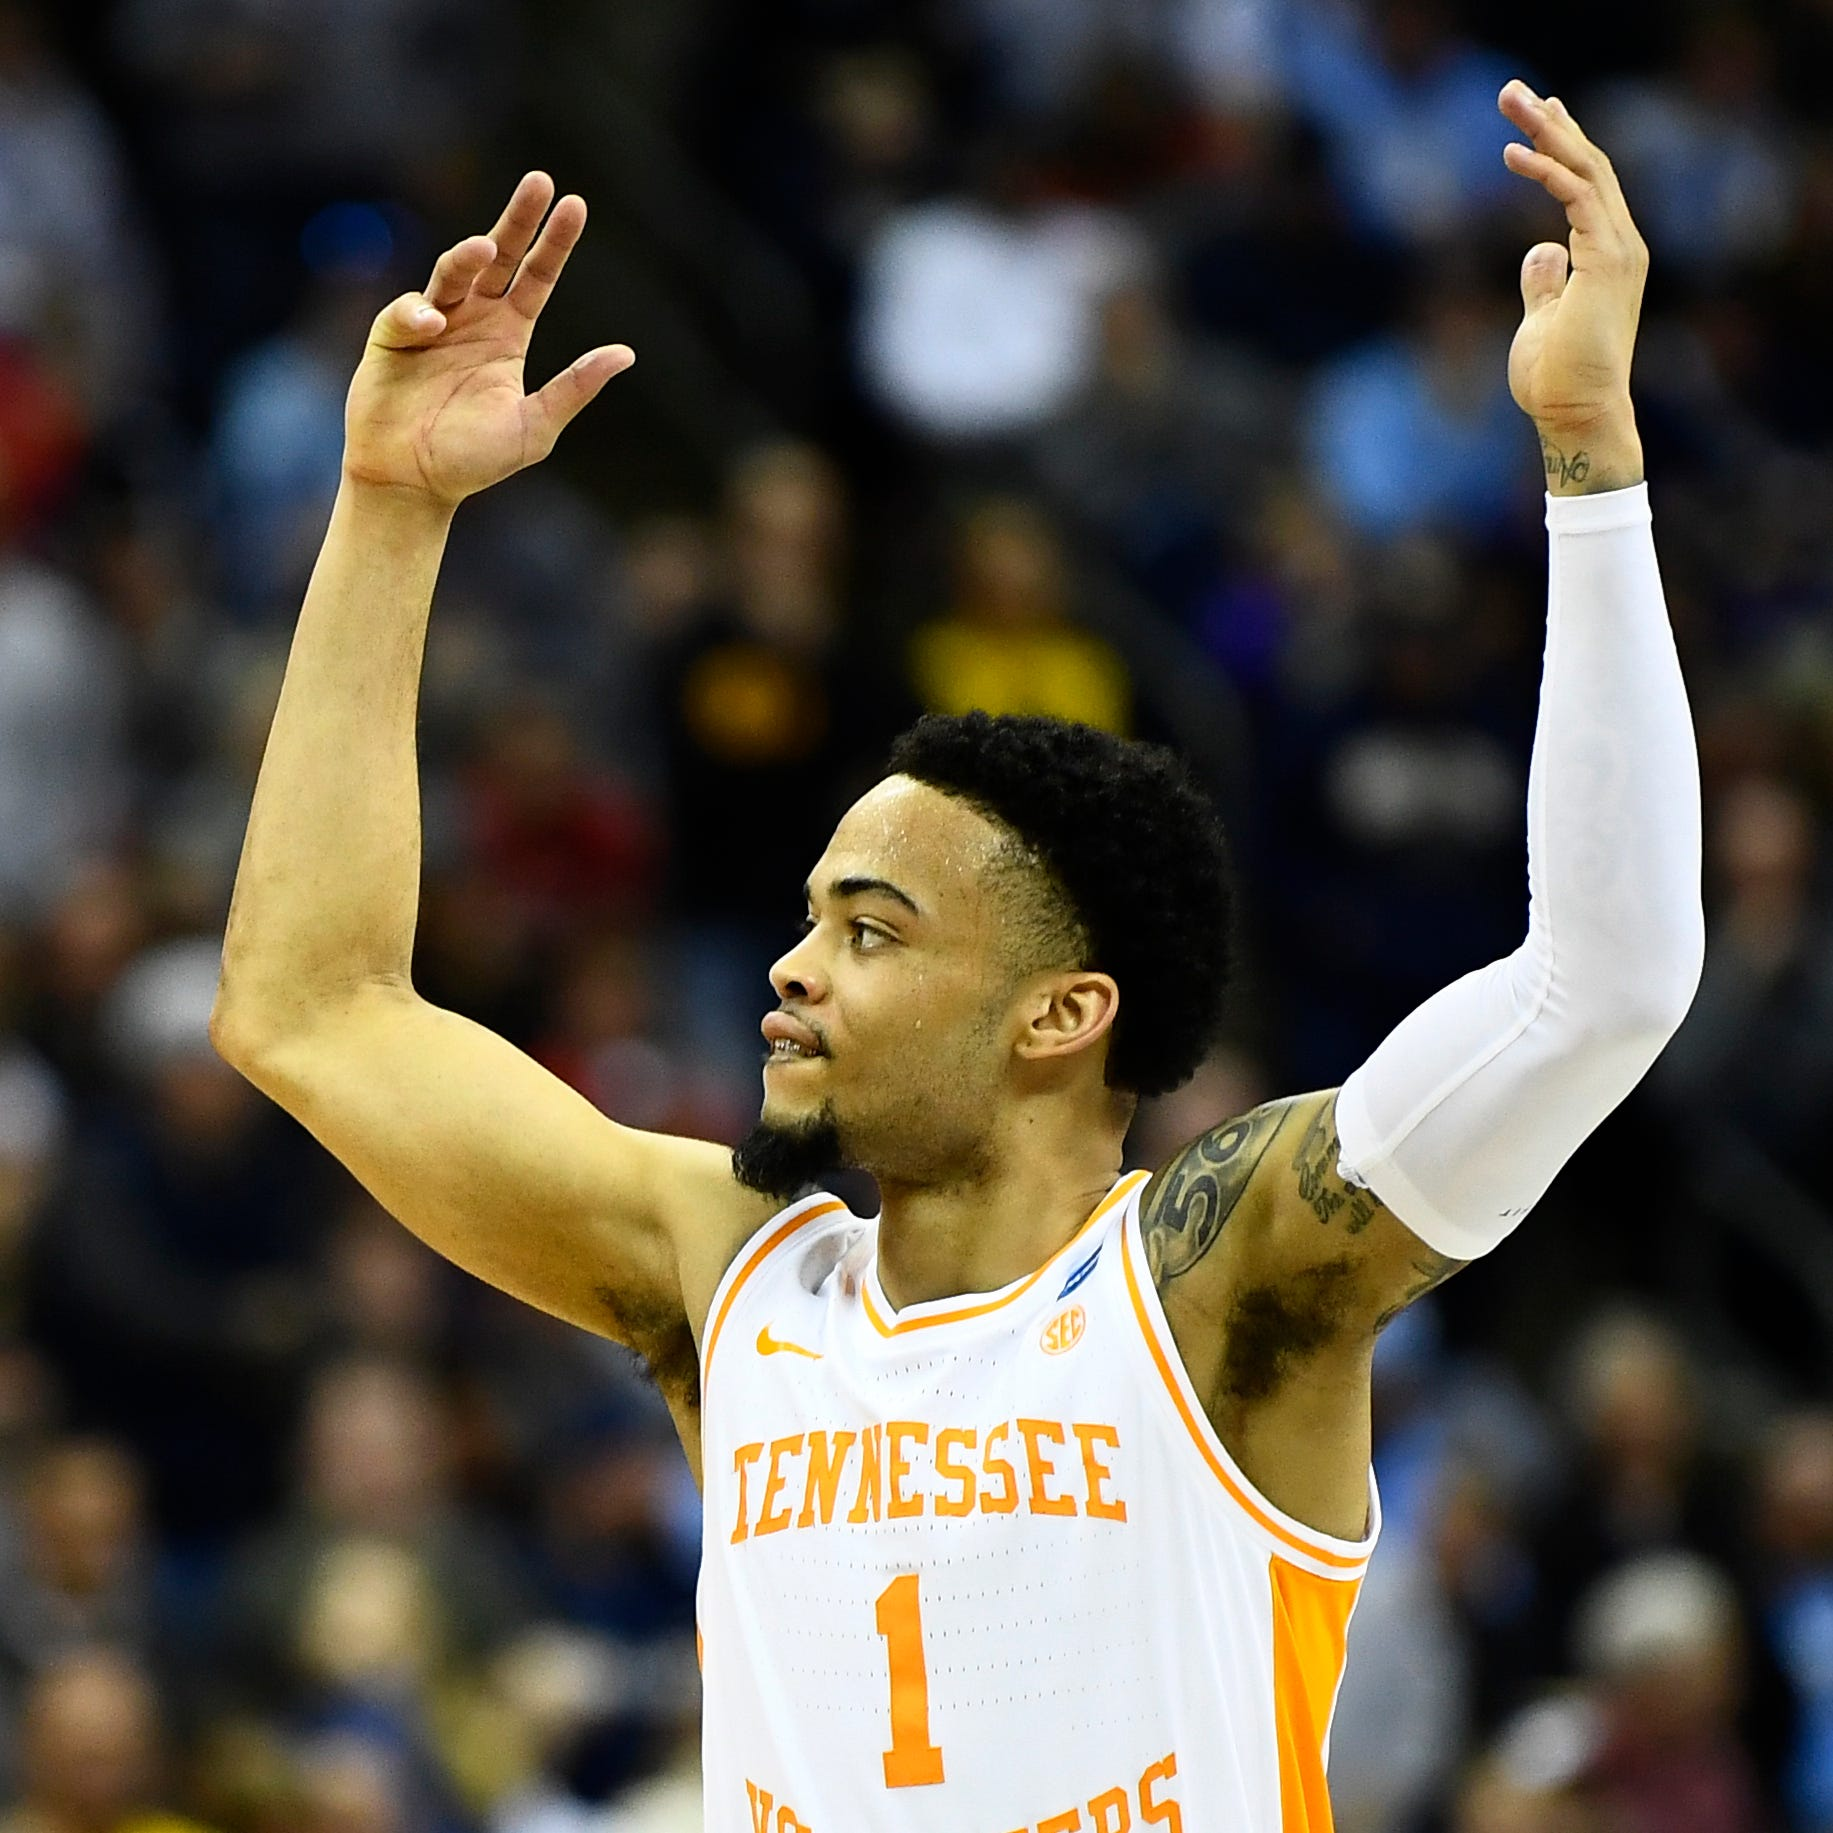 Tennessee moves a game closer to Final Four despite stunning Iowa comeback